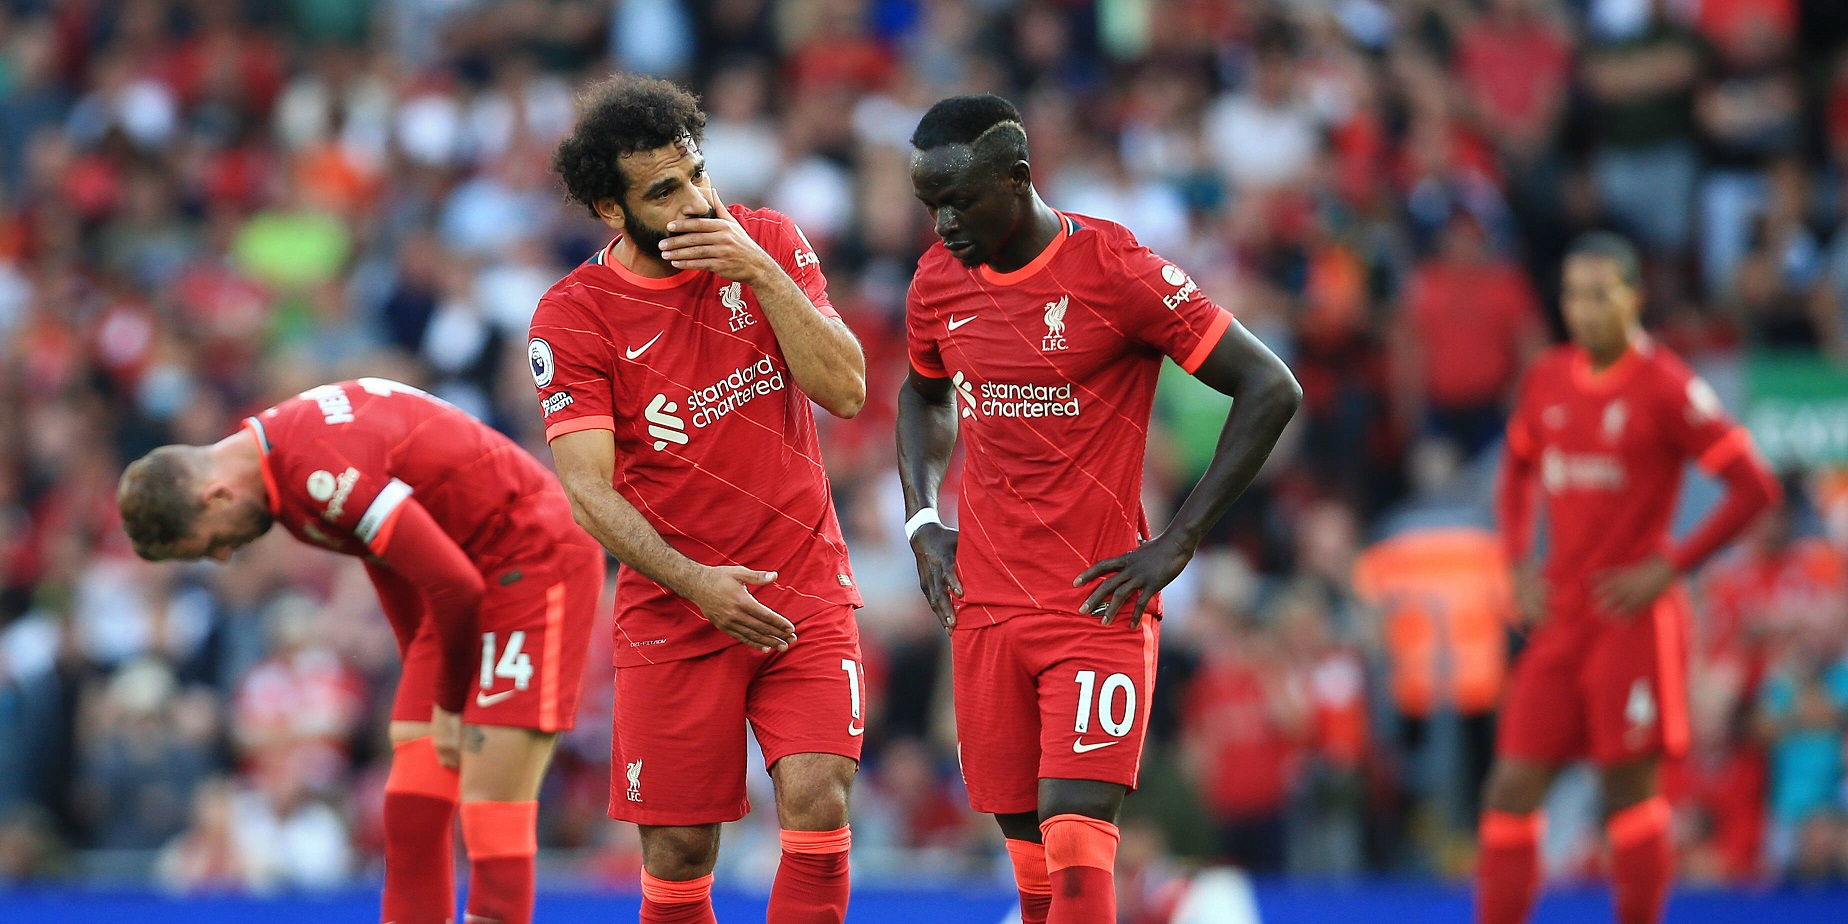 """Gerrard sends Champions League record message to Mane and Salah: """"Smash it lads"""""""